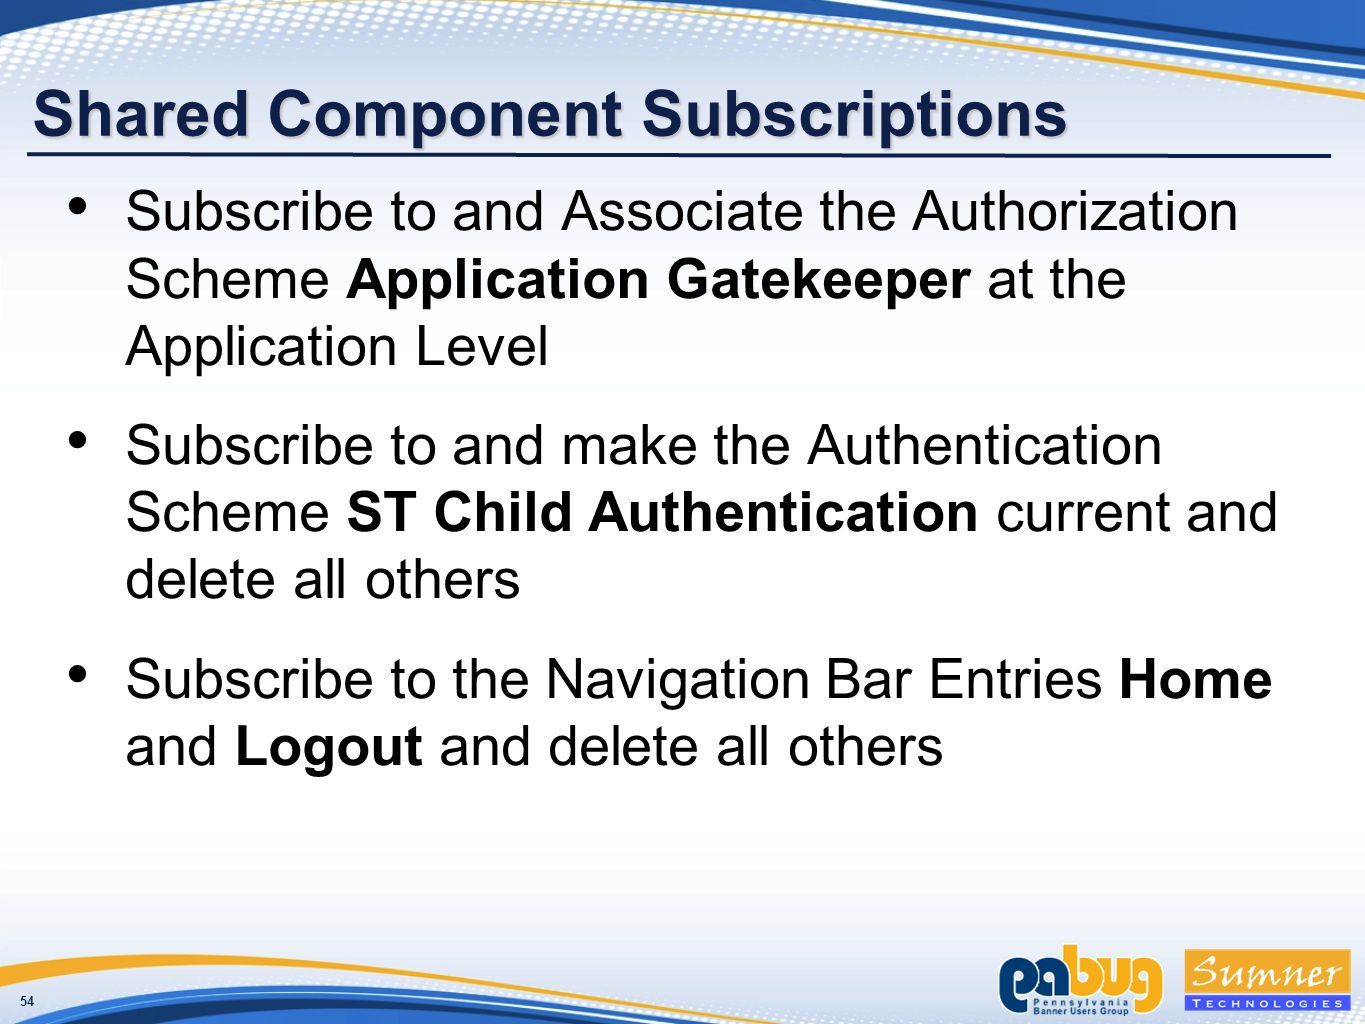 54 Shared Component Subscriptions Subscribe to and Associate the Authorization Scheme Application Gatekeeper at the Application Level Subscribe to and make the Authentication Scheme ST Child Authentication current and delete all others Subscribe to the Navigation Bar Entries Home and Logout and delete all others